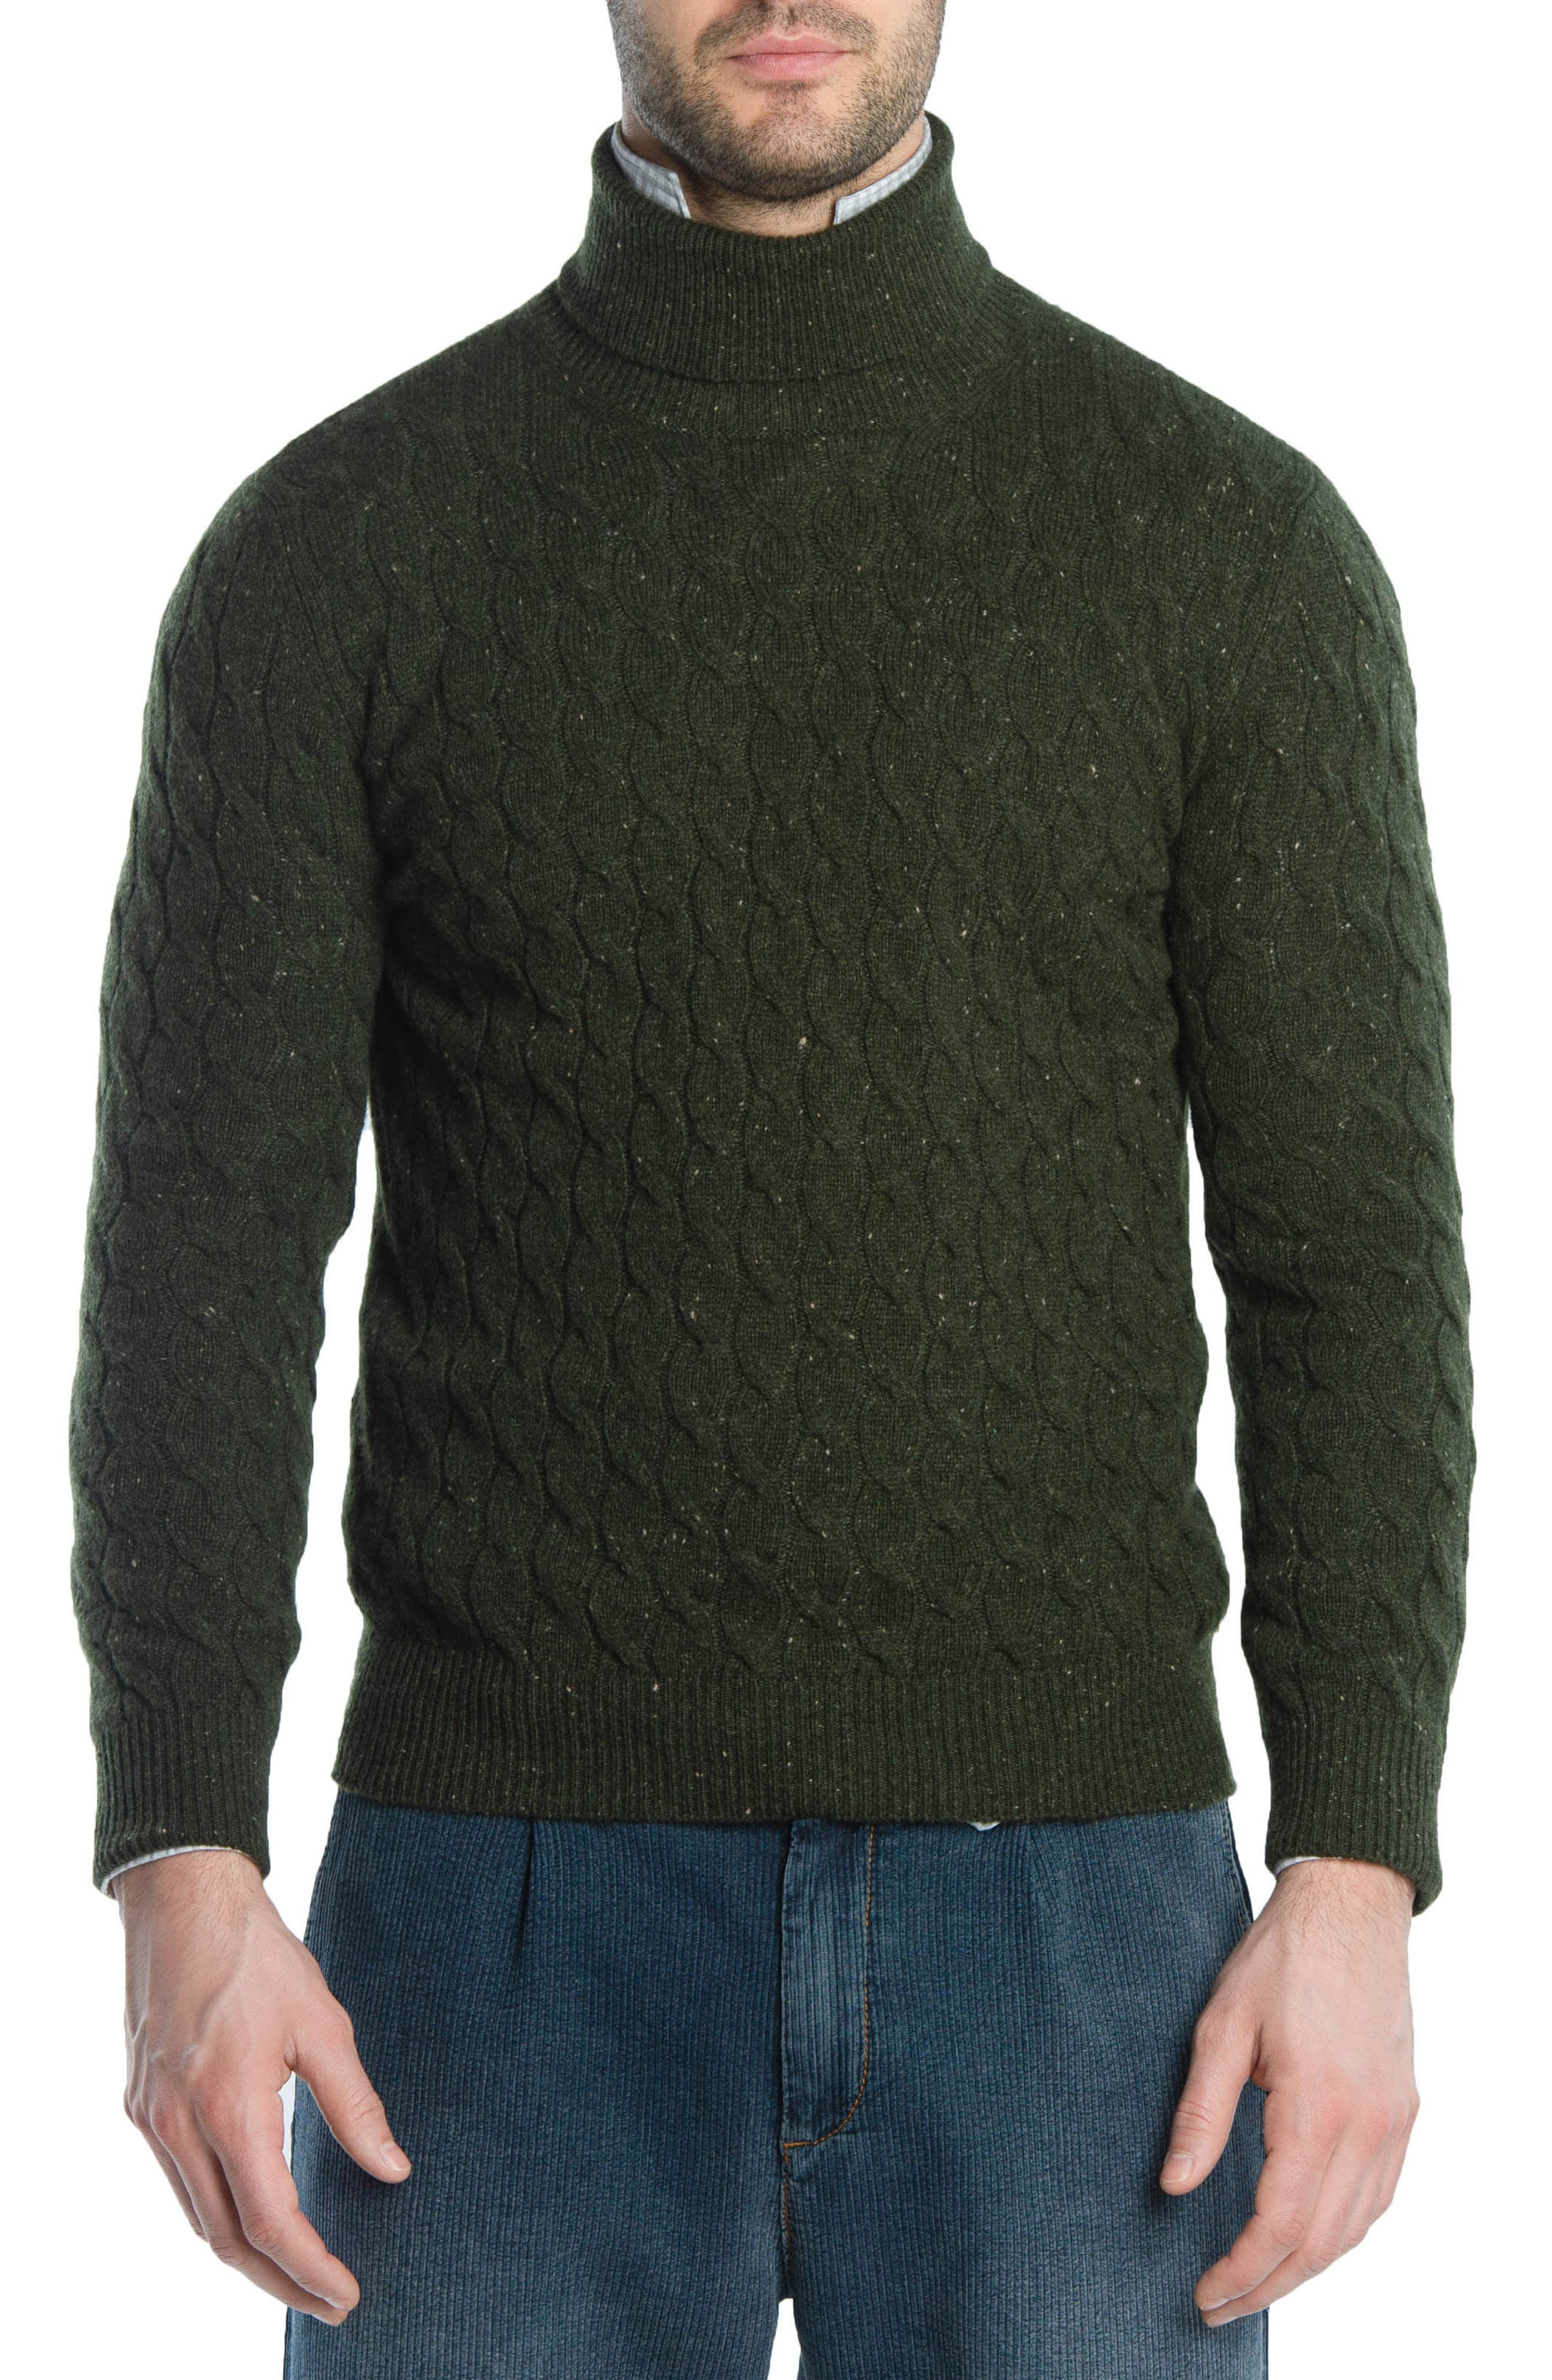 Cableknit Turtleneck Cashmere Sweater,                             Main thumbnail 1, color,                             GREEN